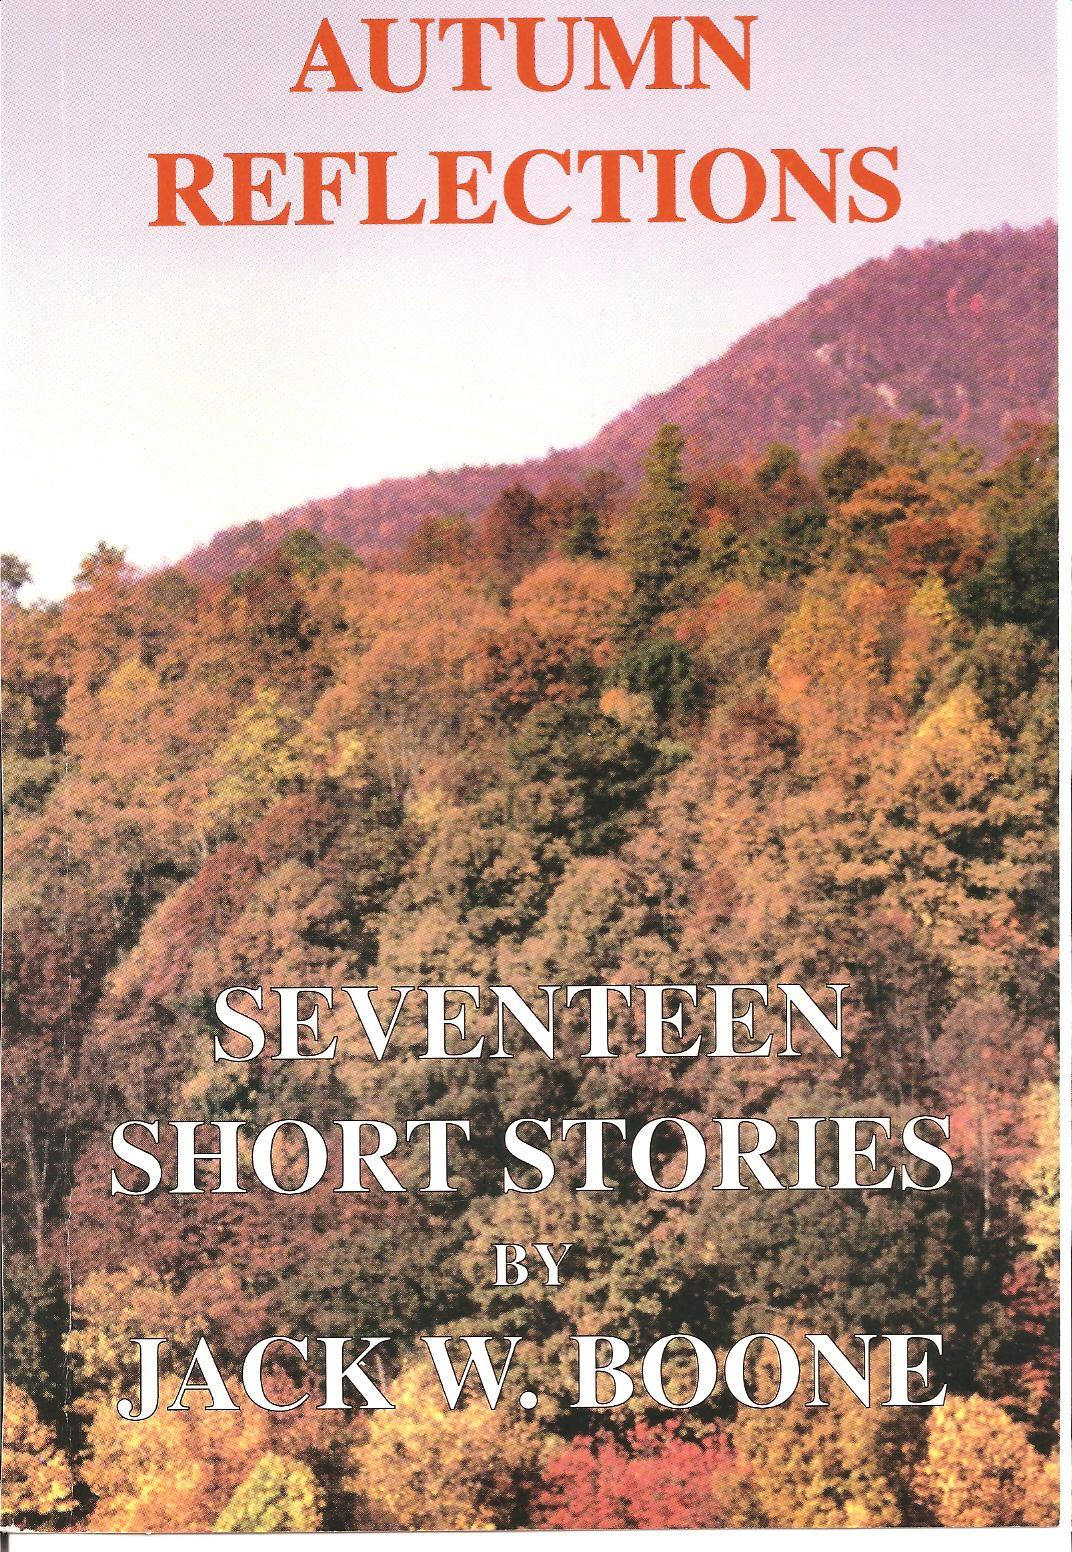 Autumn Reflections: Seventeen Short Stories